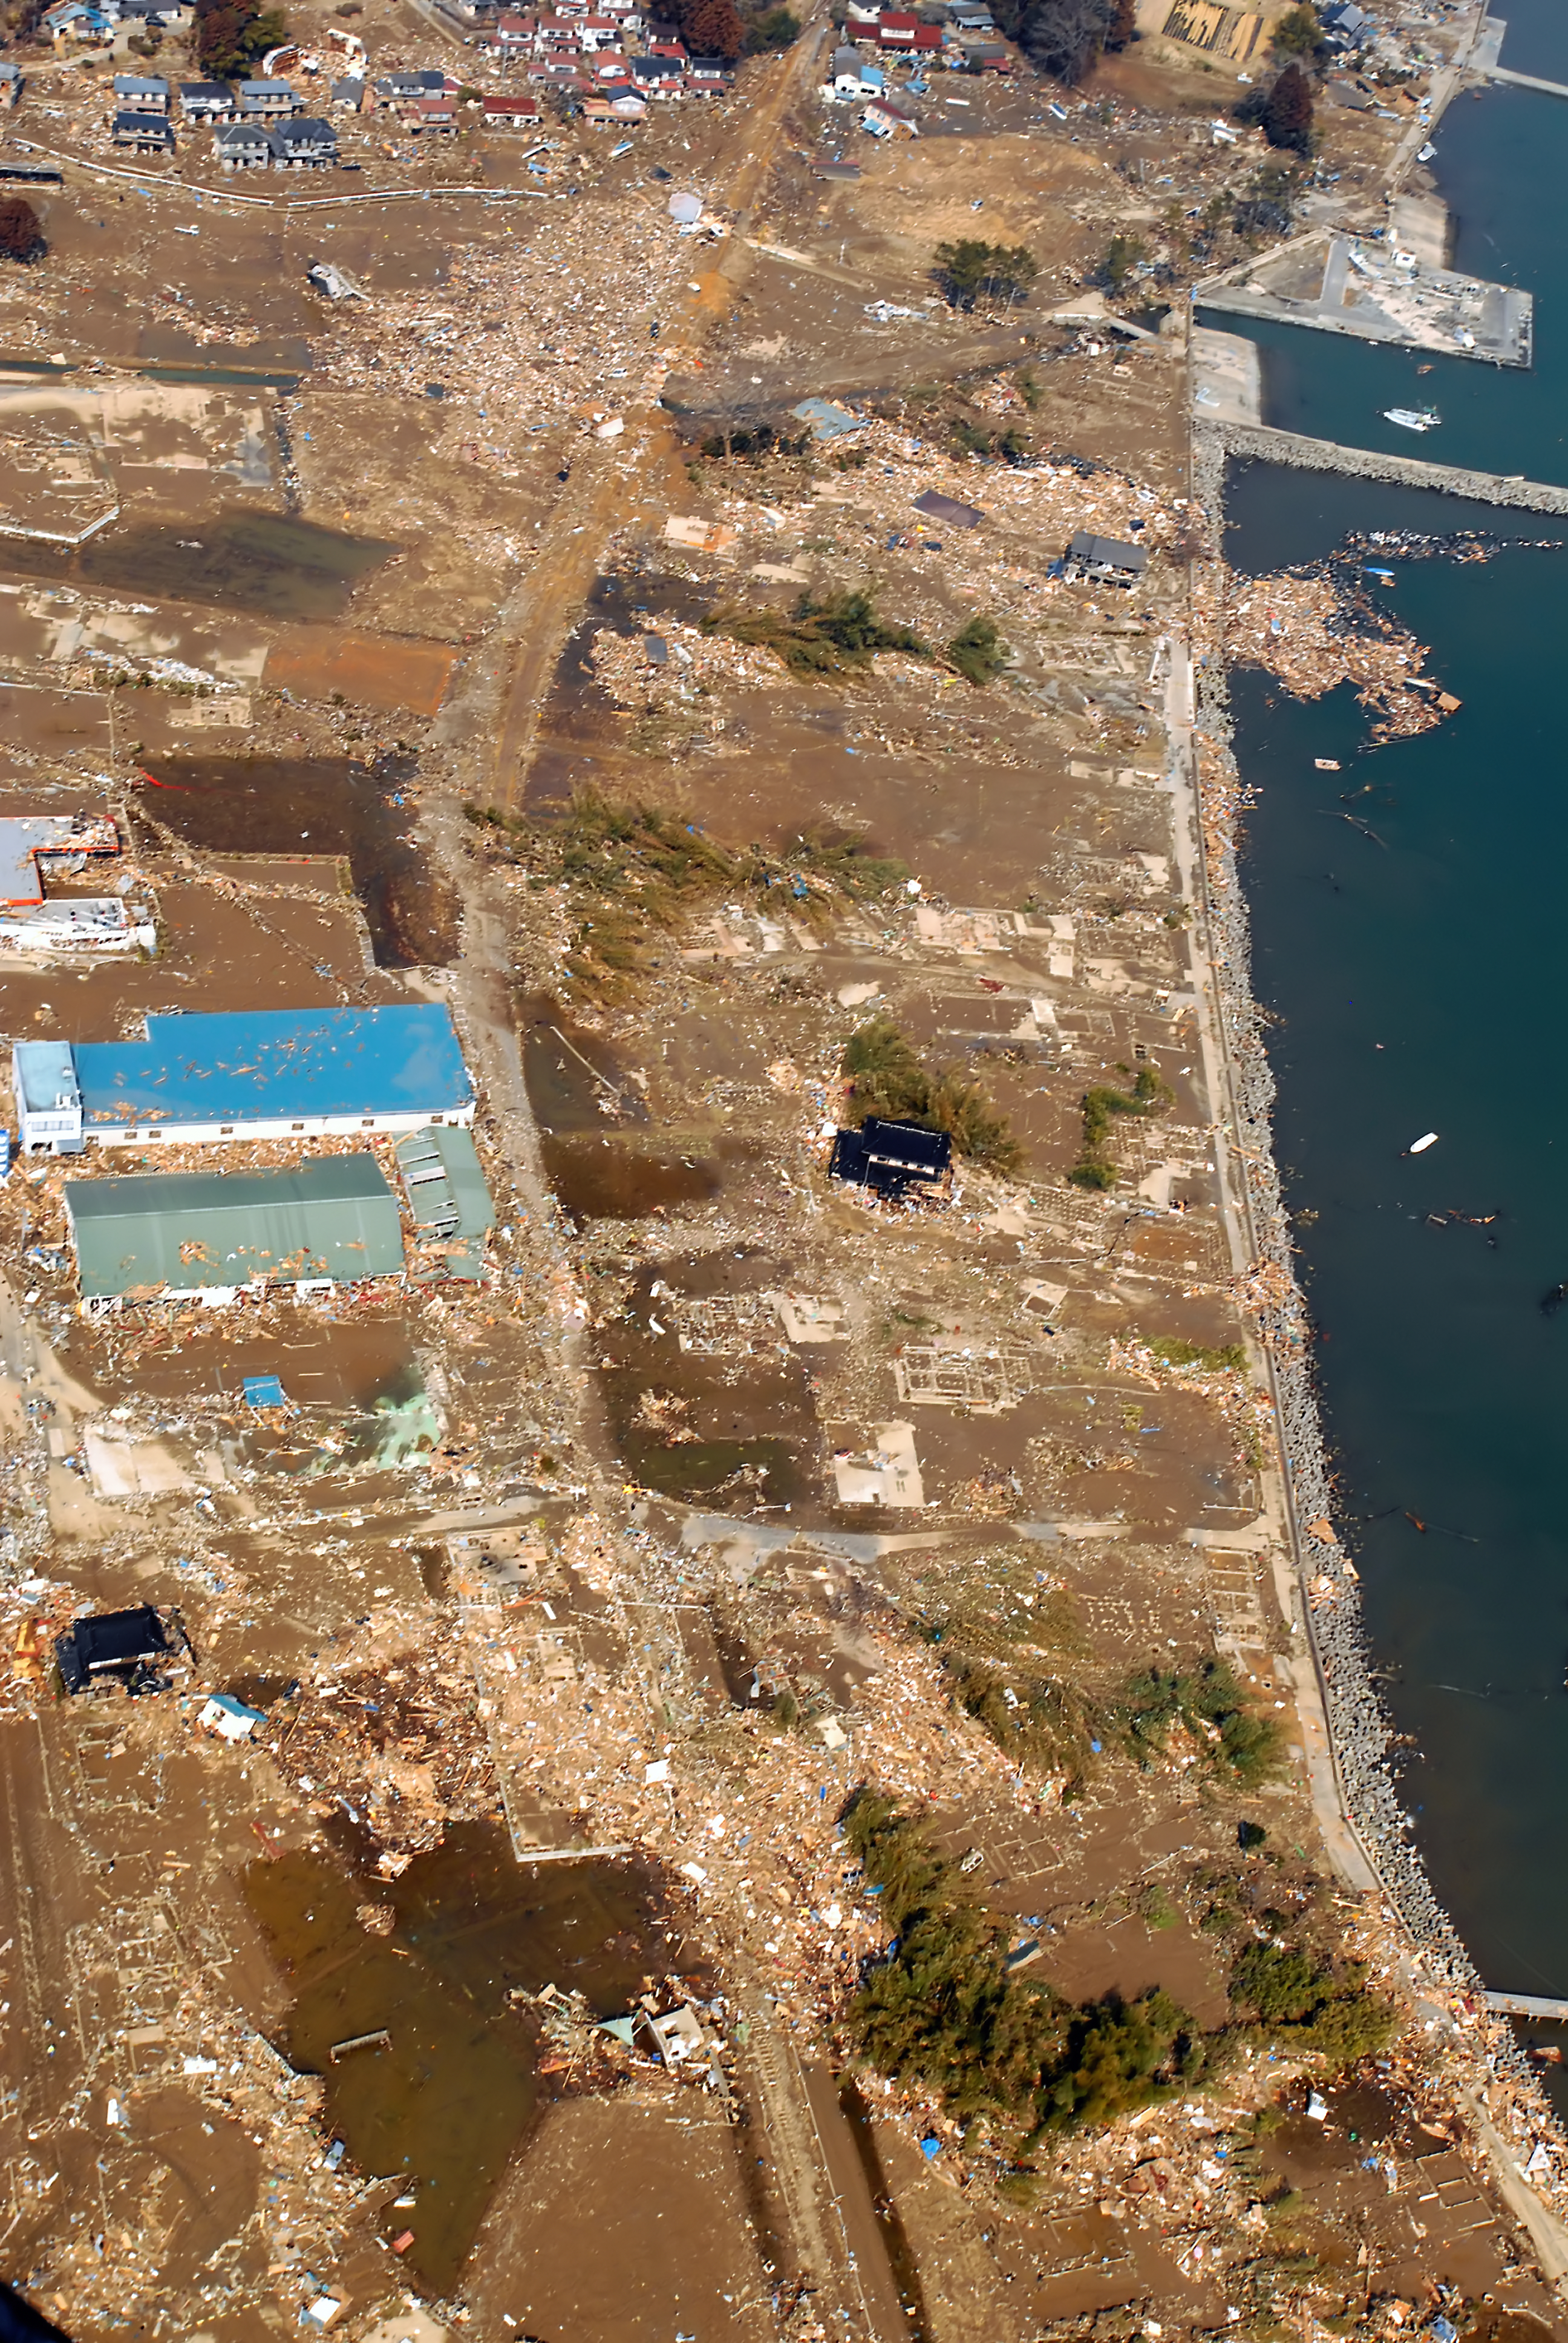 An aerial view of tsunami damage in an area north of Sendai, Japan, taken from a U.S. Navy helicopter-LF